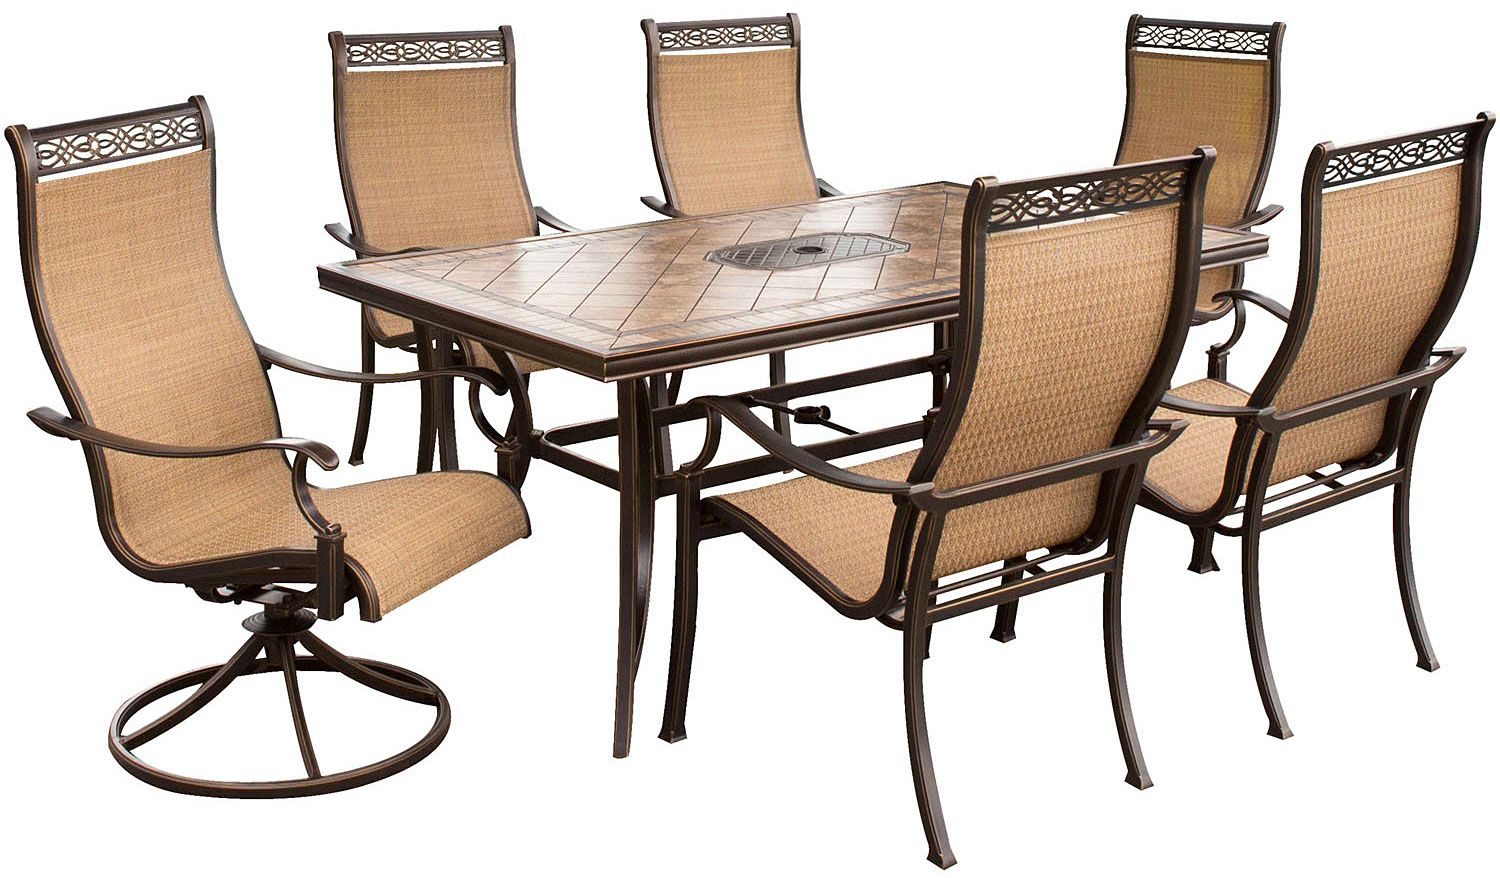 Hanover Brown 7-Piece Outdoor Dining Set - MONACO7PCSW